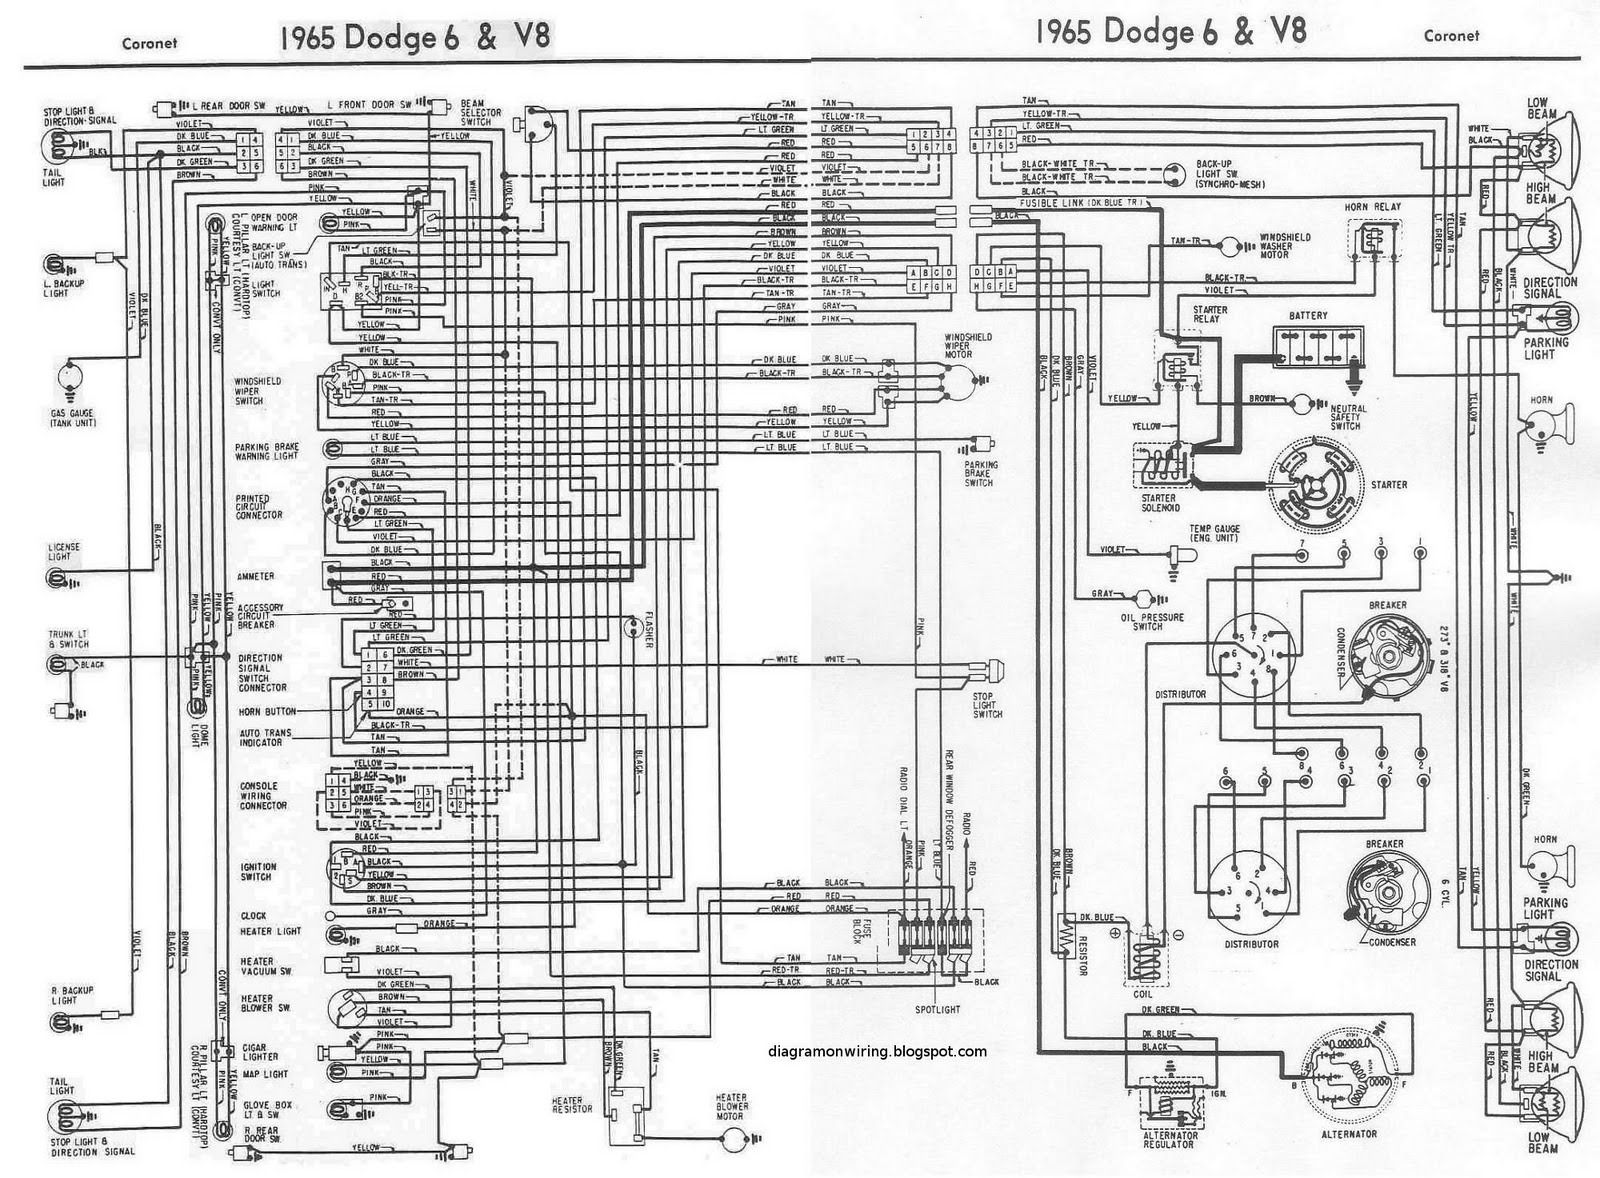 DIAGRAM] 1968 Coronet Wiring Diagram FULL Version HD Quality Wiring Diagram  - TRIANGULAR-DIAGRAMS.ROMANIATV.ITromaniatv.it